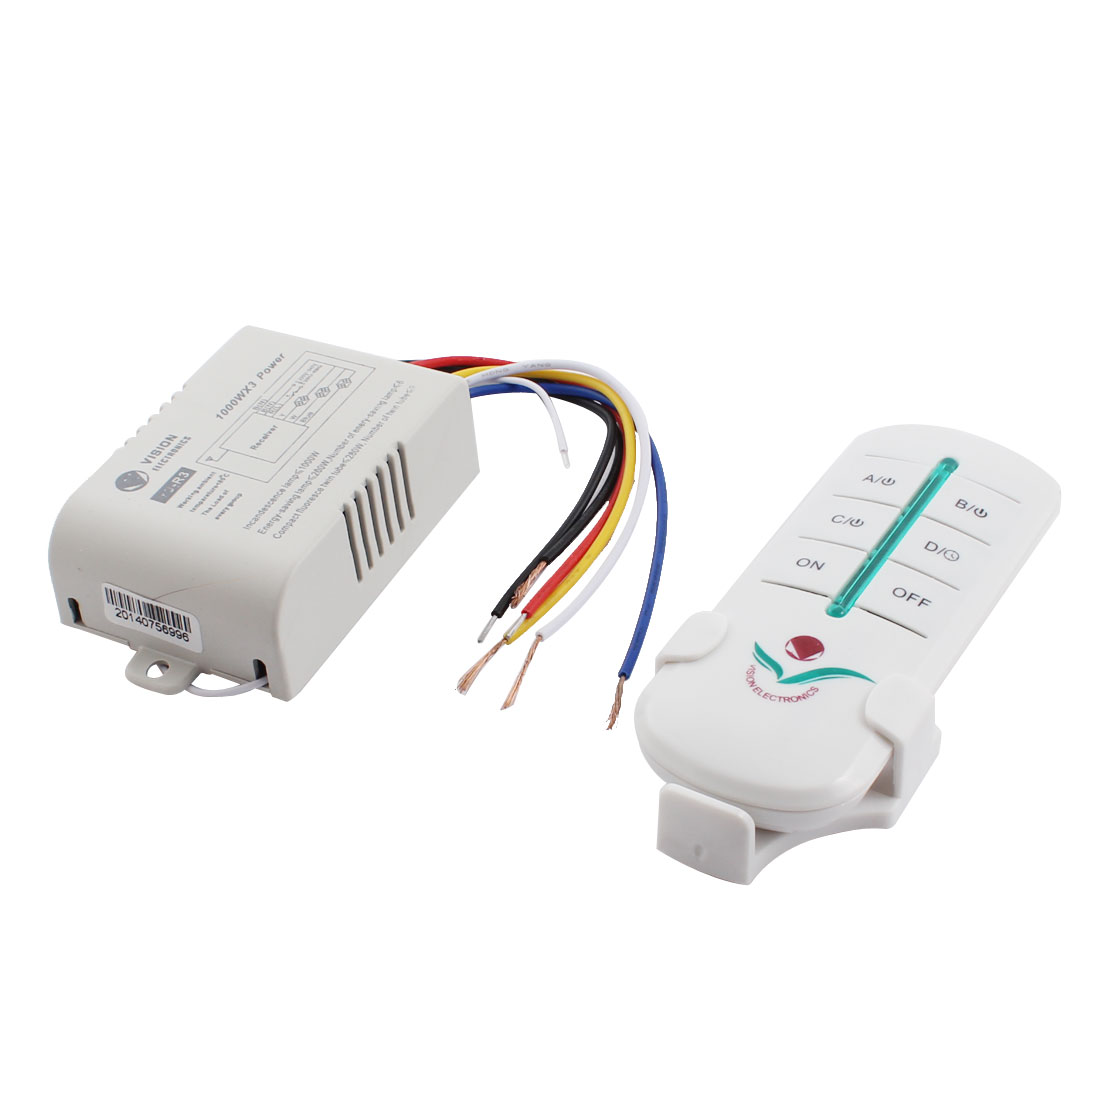 AC200-240V 6CH On/Off Light Control Wired White Plastic Housing Wireless Remote Wall Switch w Bracket